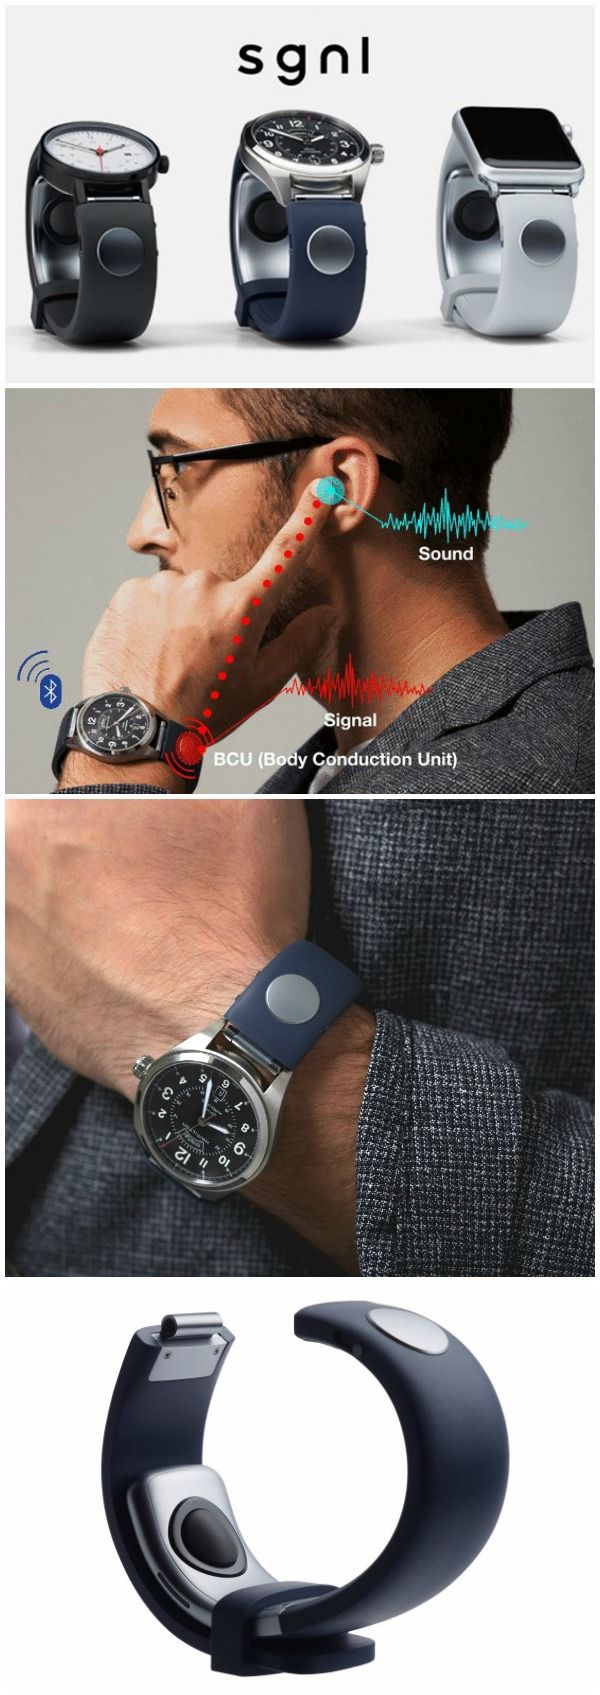 Sgnl is the smart strap that enables you to make calls by placing your fingertip…